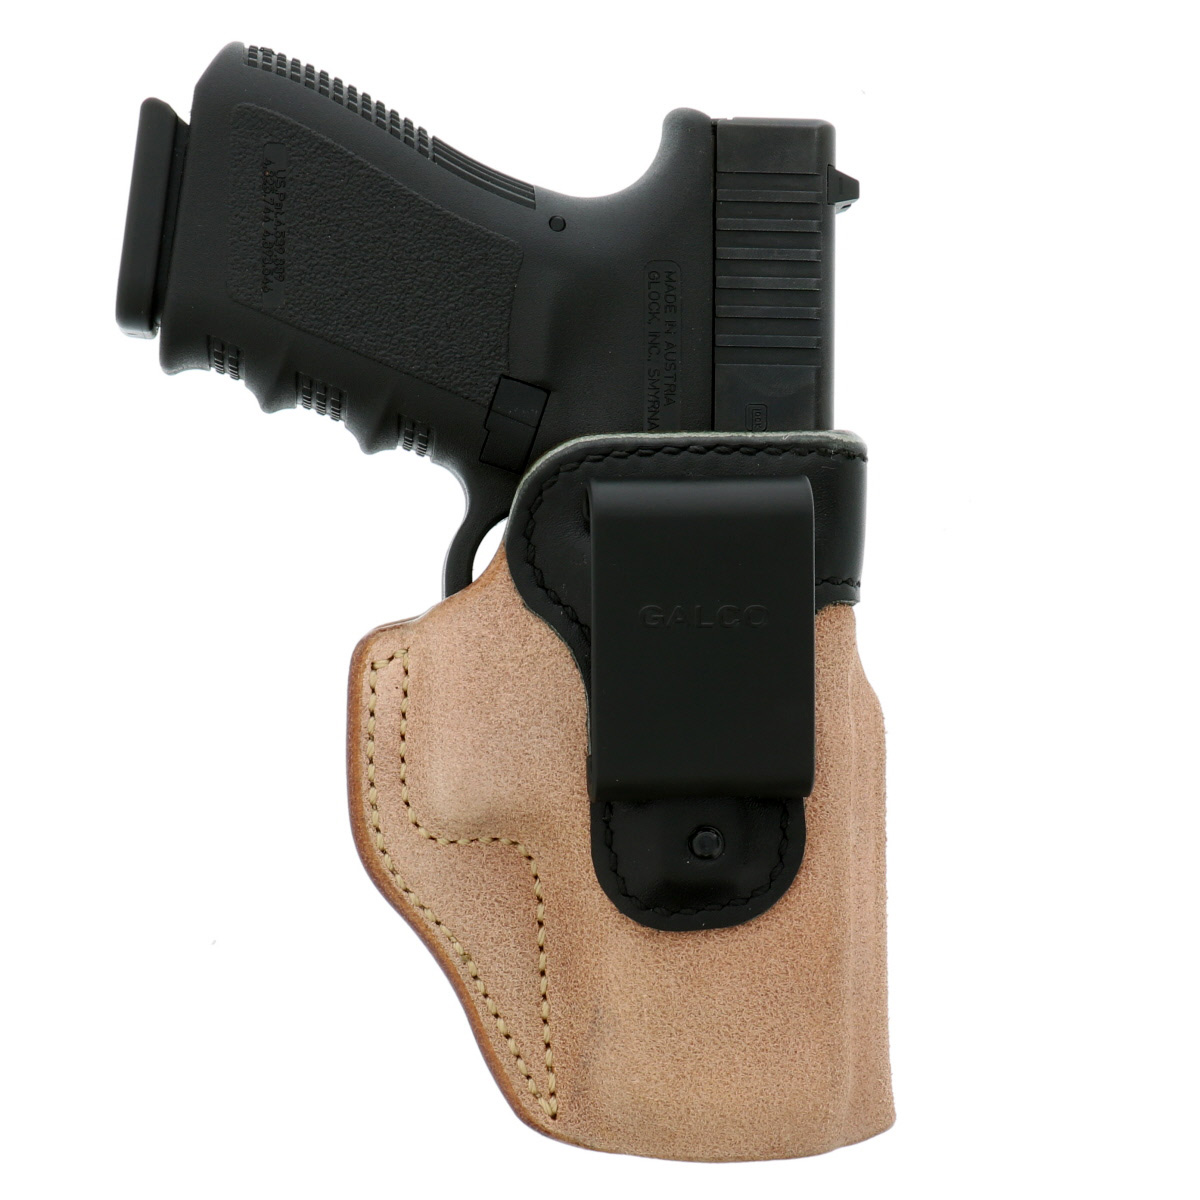 Glock pistol in a Galco Scout holster